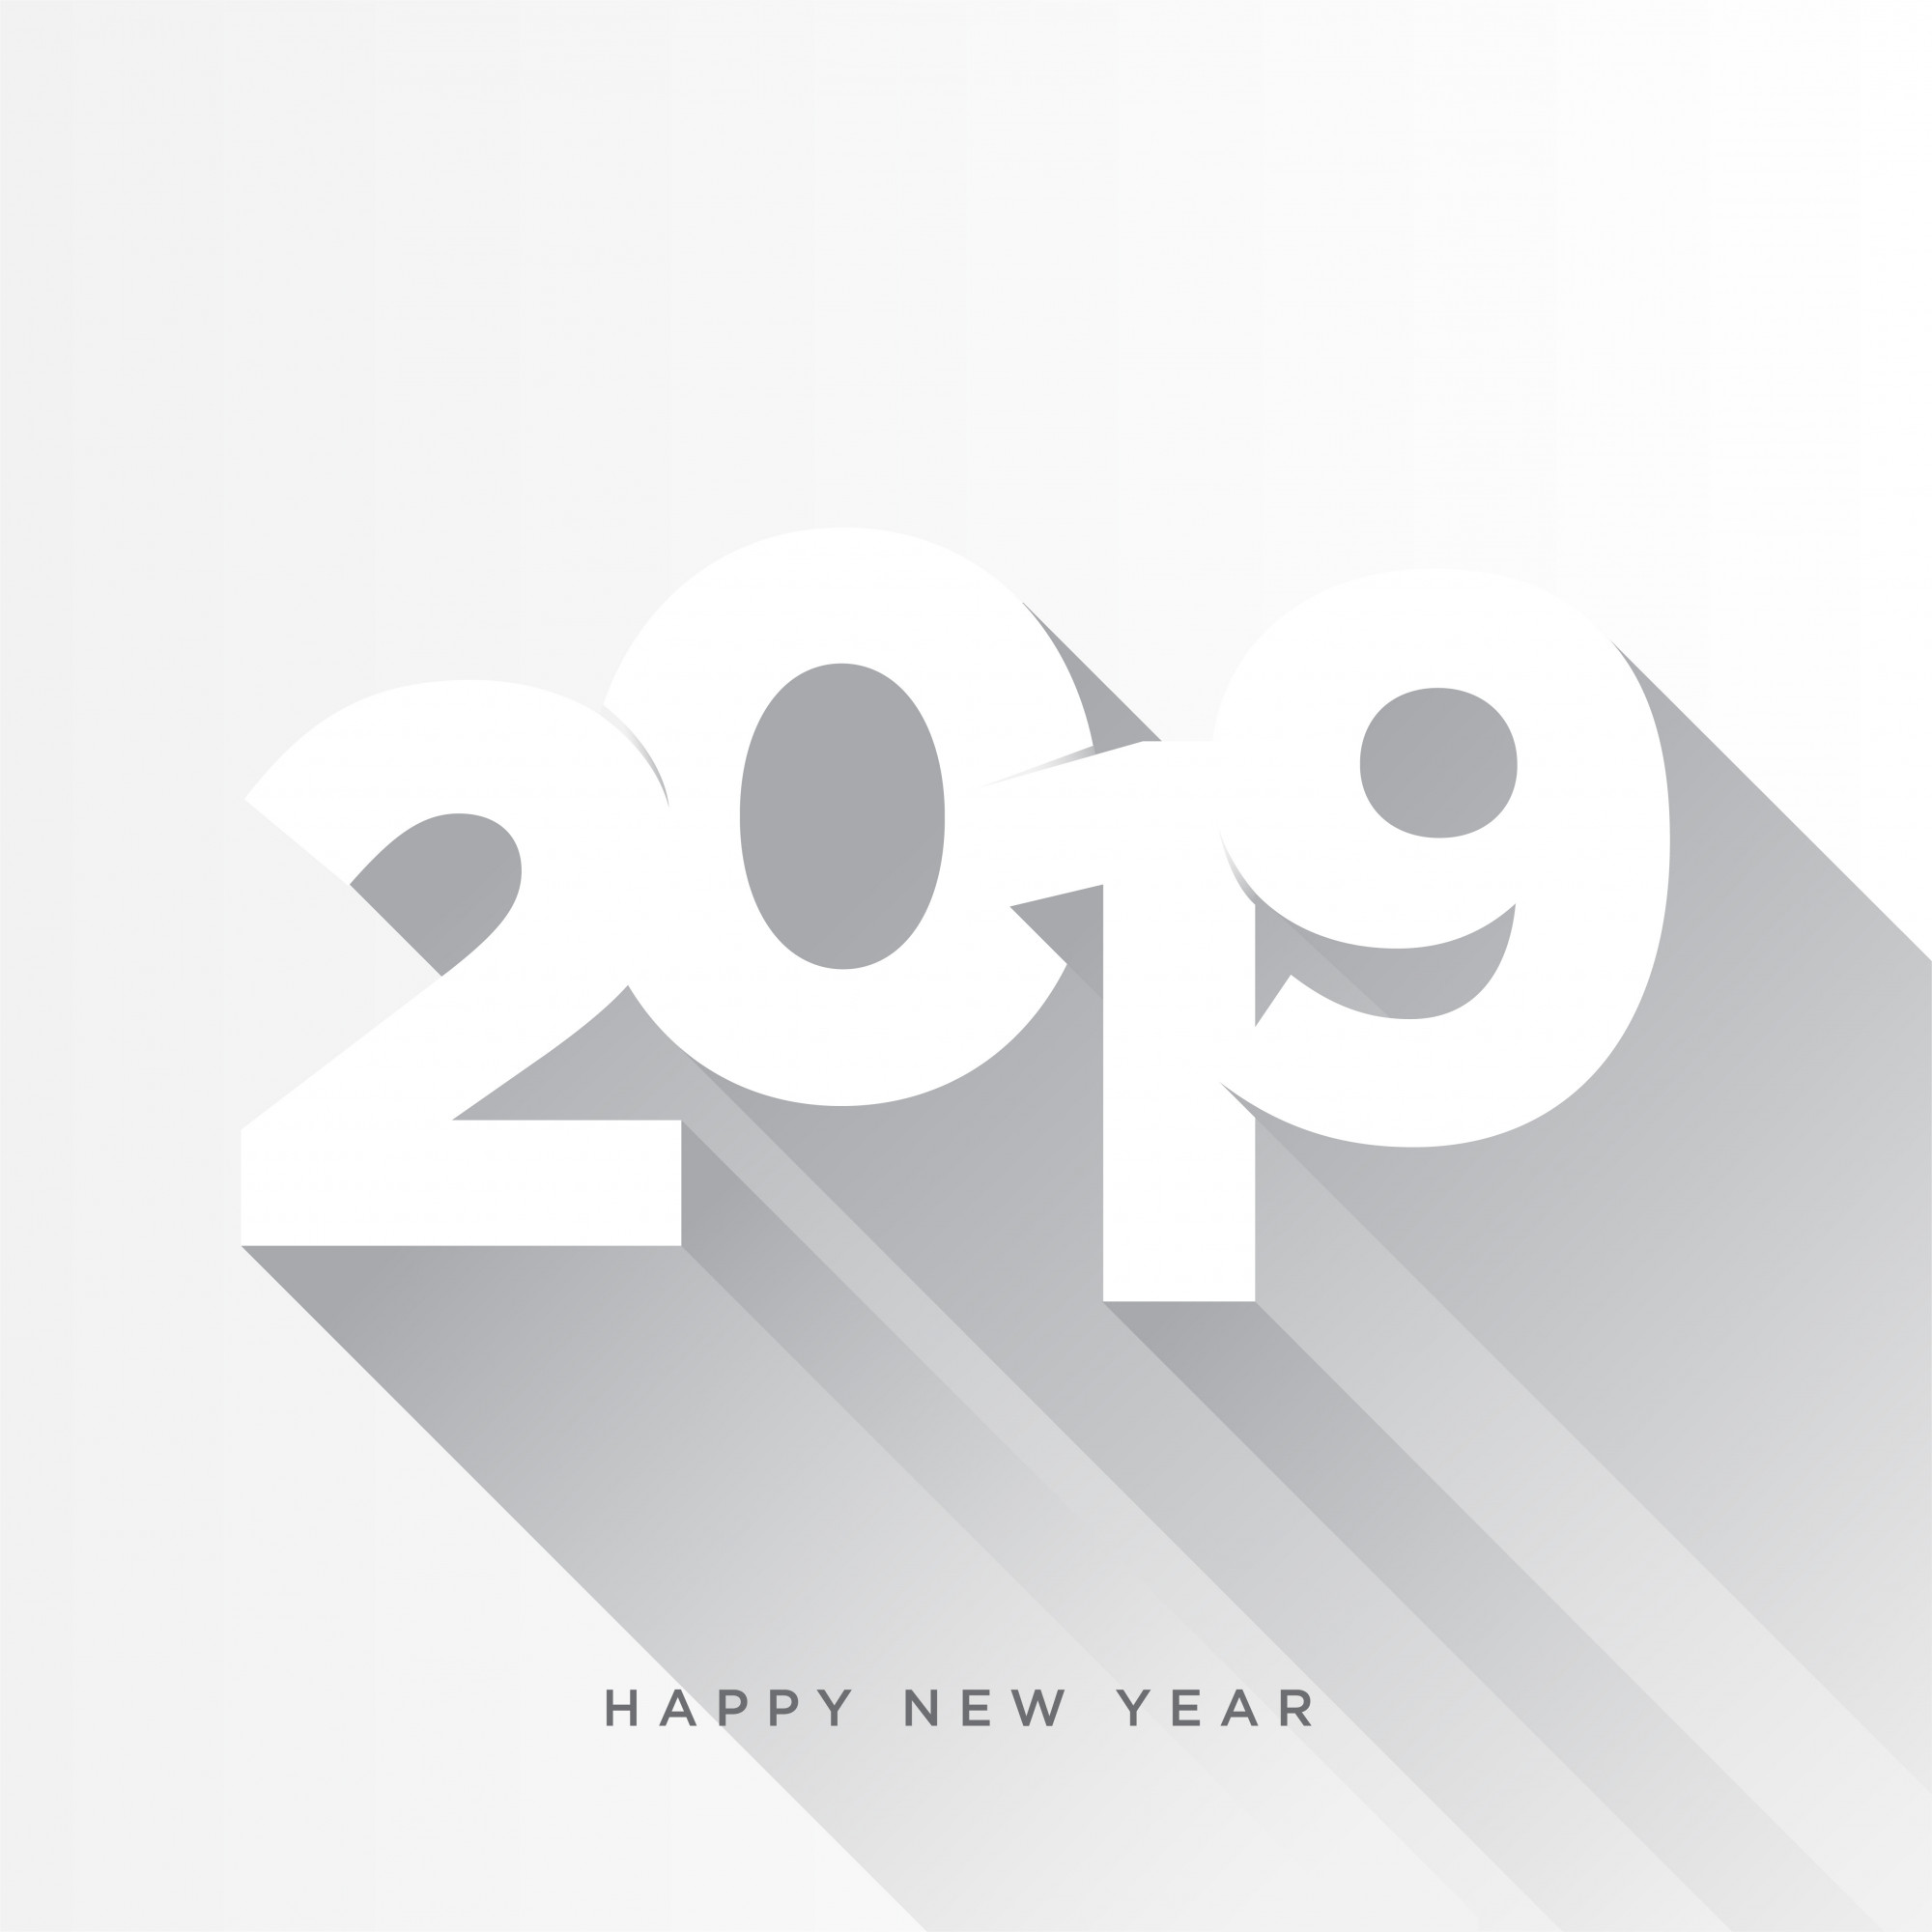 Happy New Year 2019 card theme. gray long shadow on white background